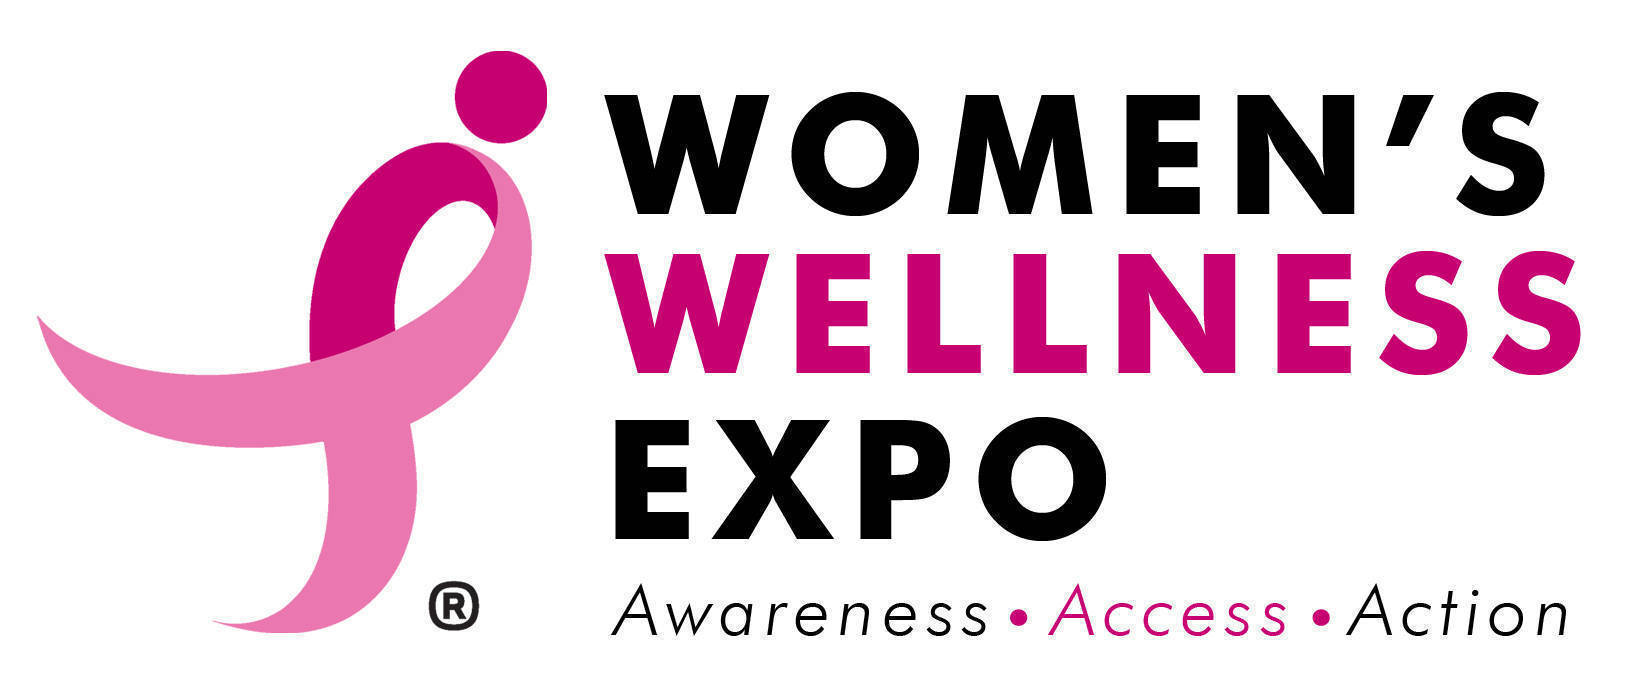 Susan G. Komen North Jersey to Present Free Women's Wellness Expo in Wayne, NJ